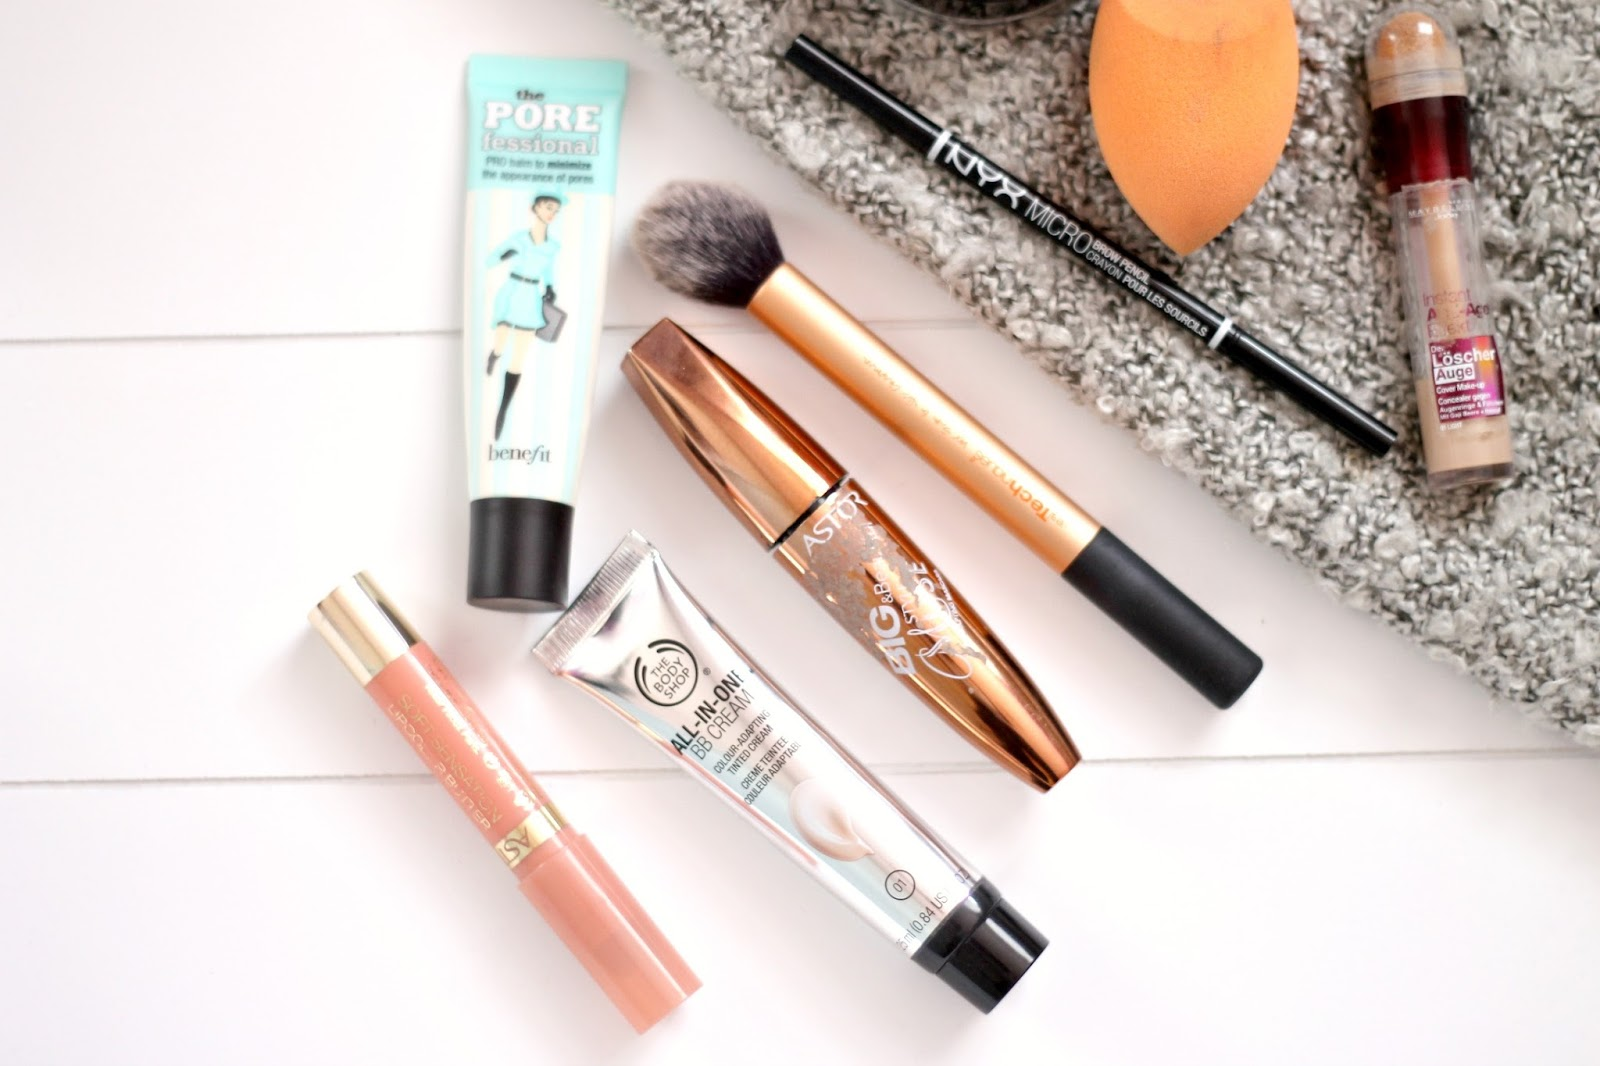 flatlay, close up, porefessional primer, makeup brush, bb cream,